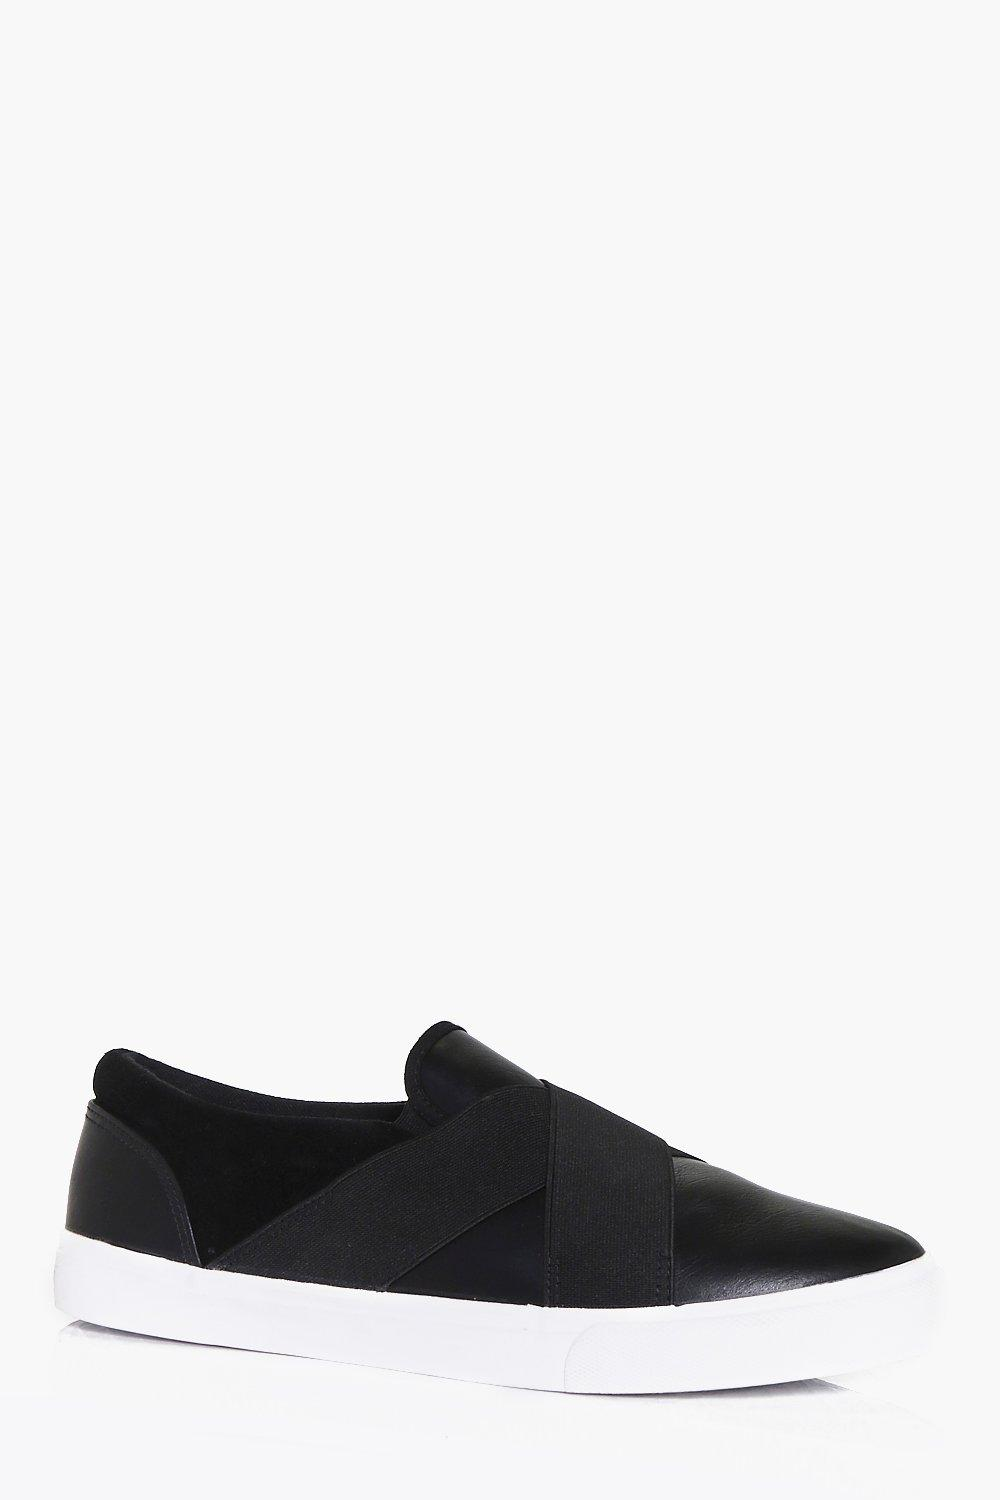 Slip On Cross Panel Plimsolls